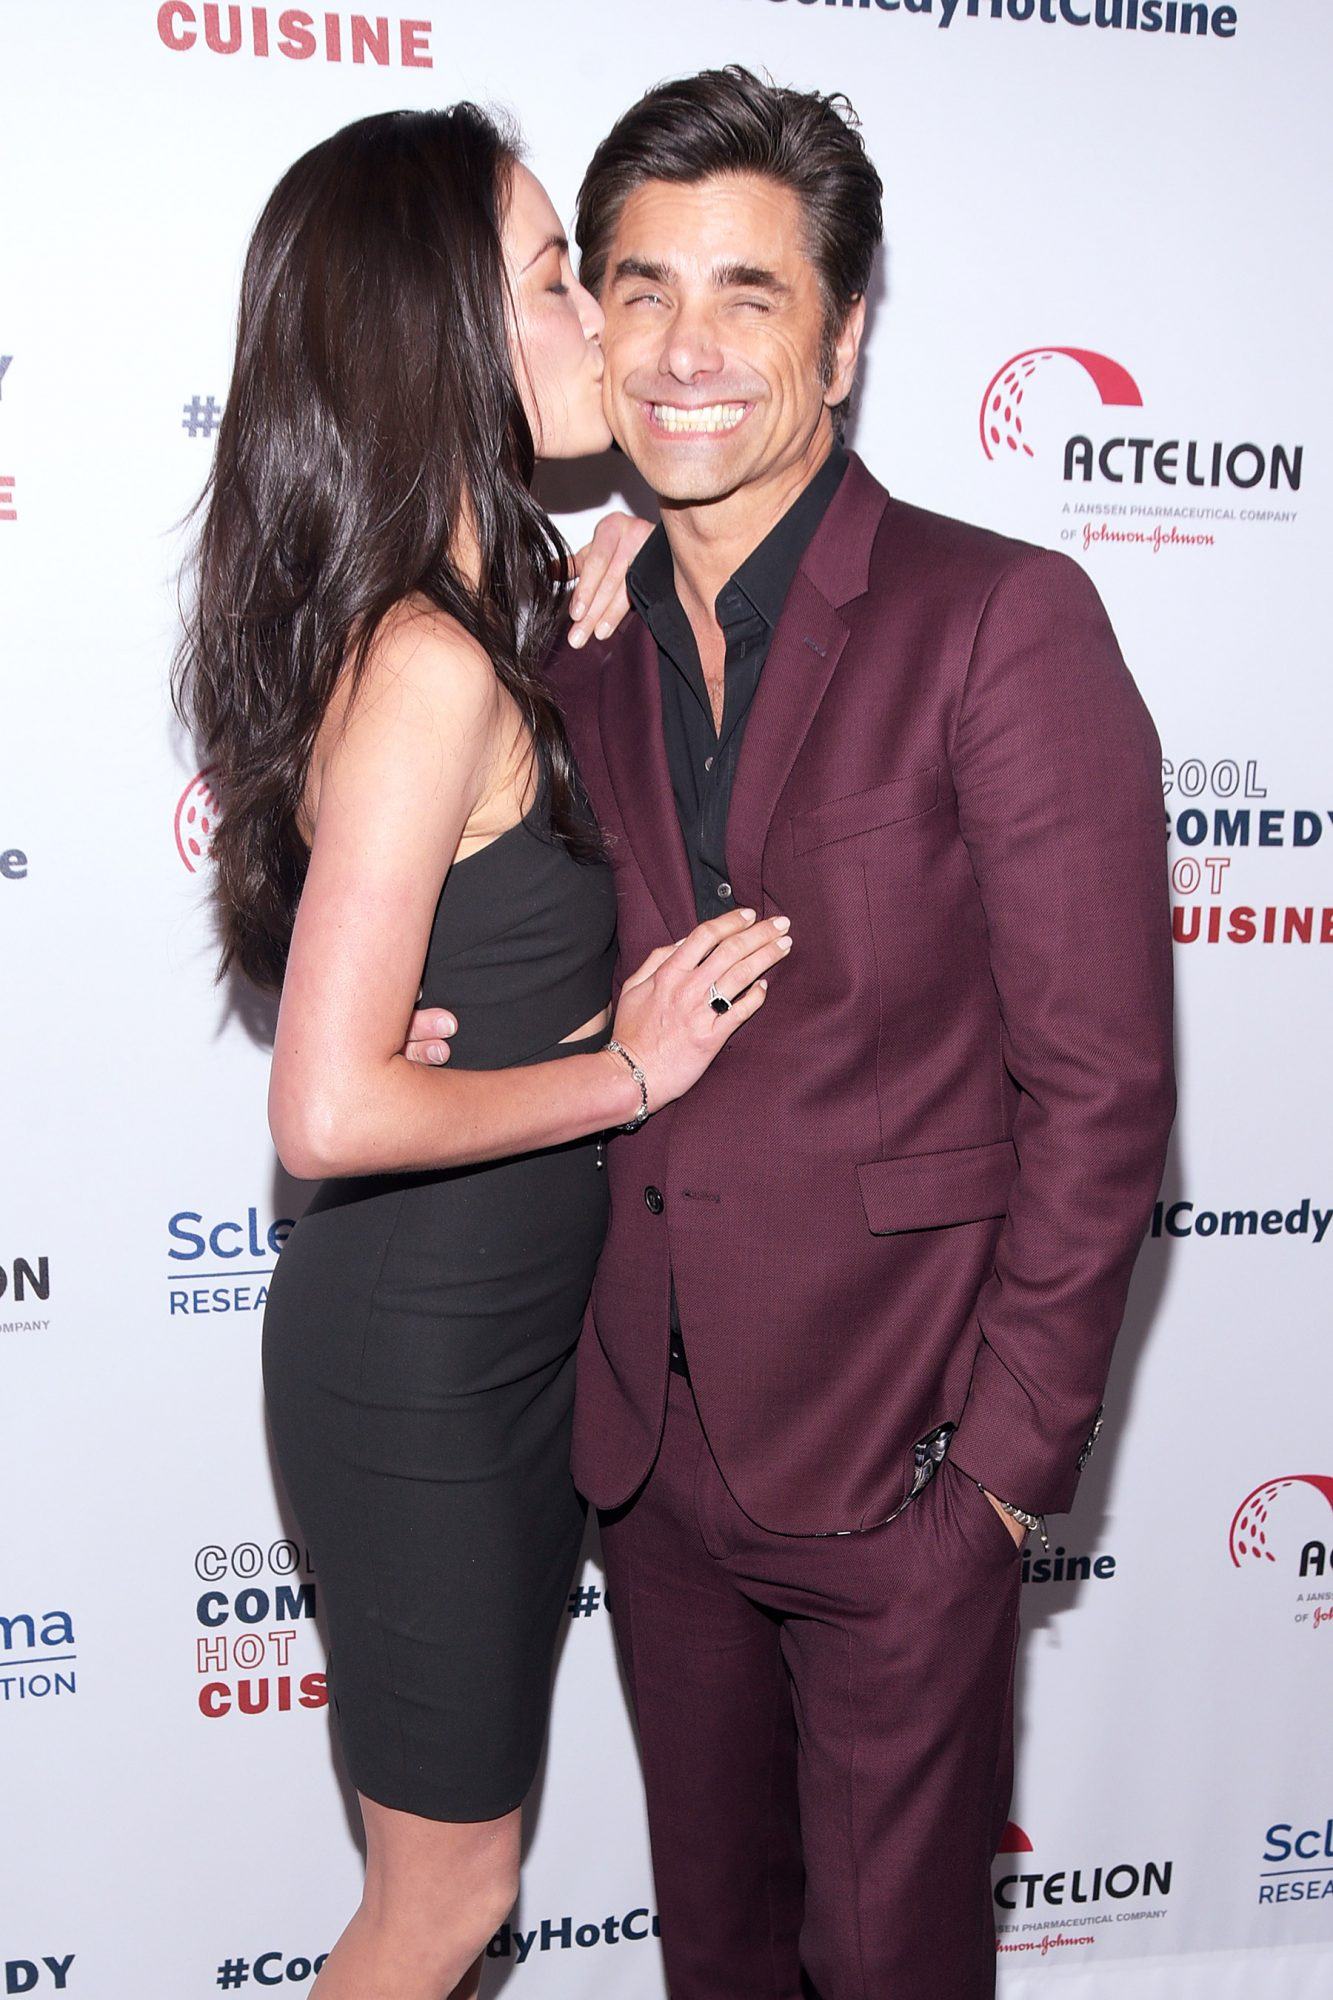 Caitlin McHugh and John Stamos